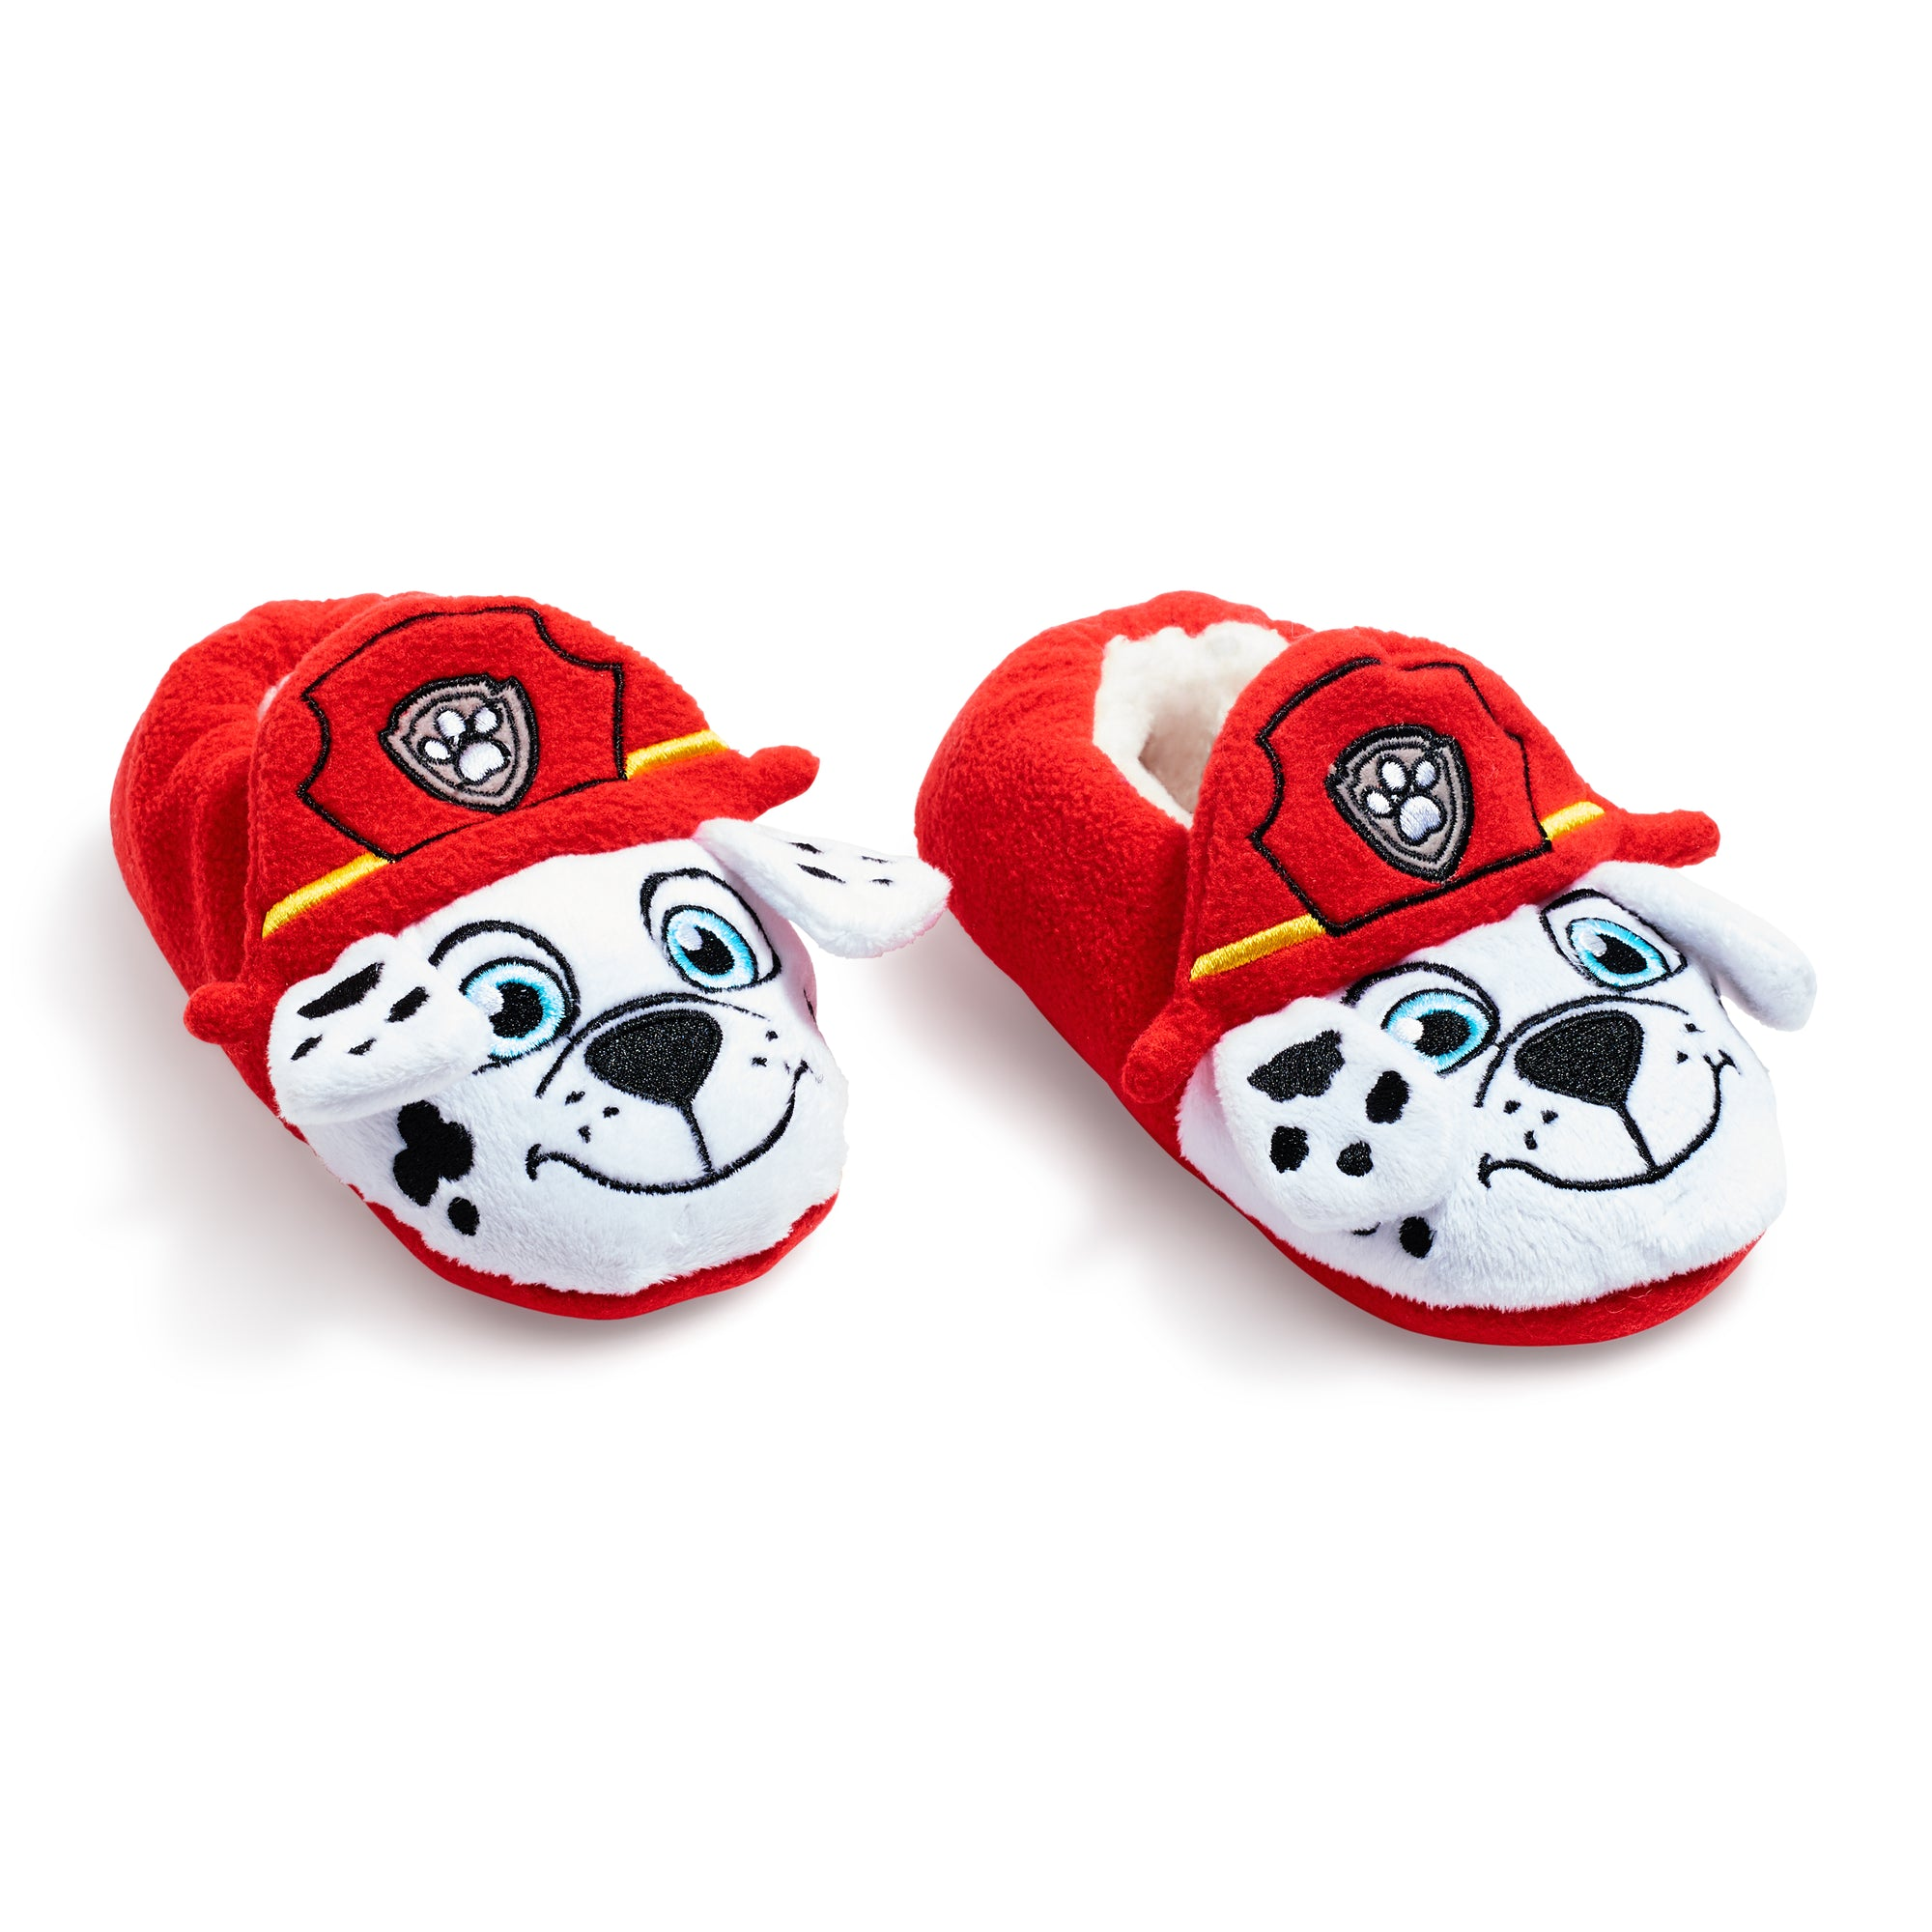 PAW PATROL NEW RED // WHITE Slipper Socks with Grippers for Kids